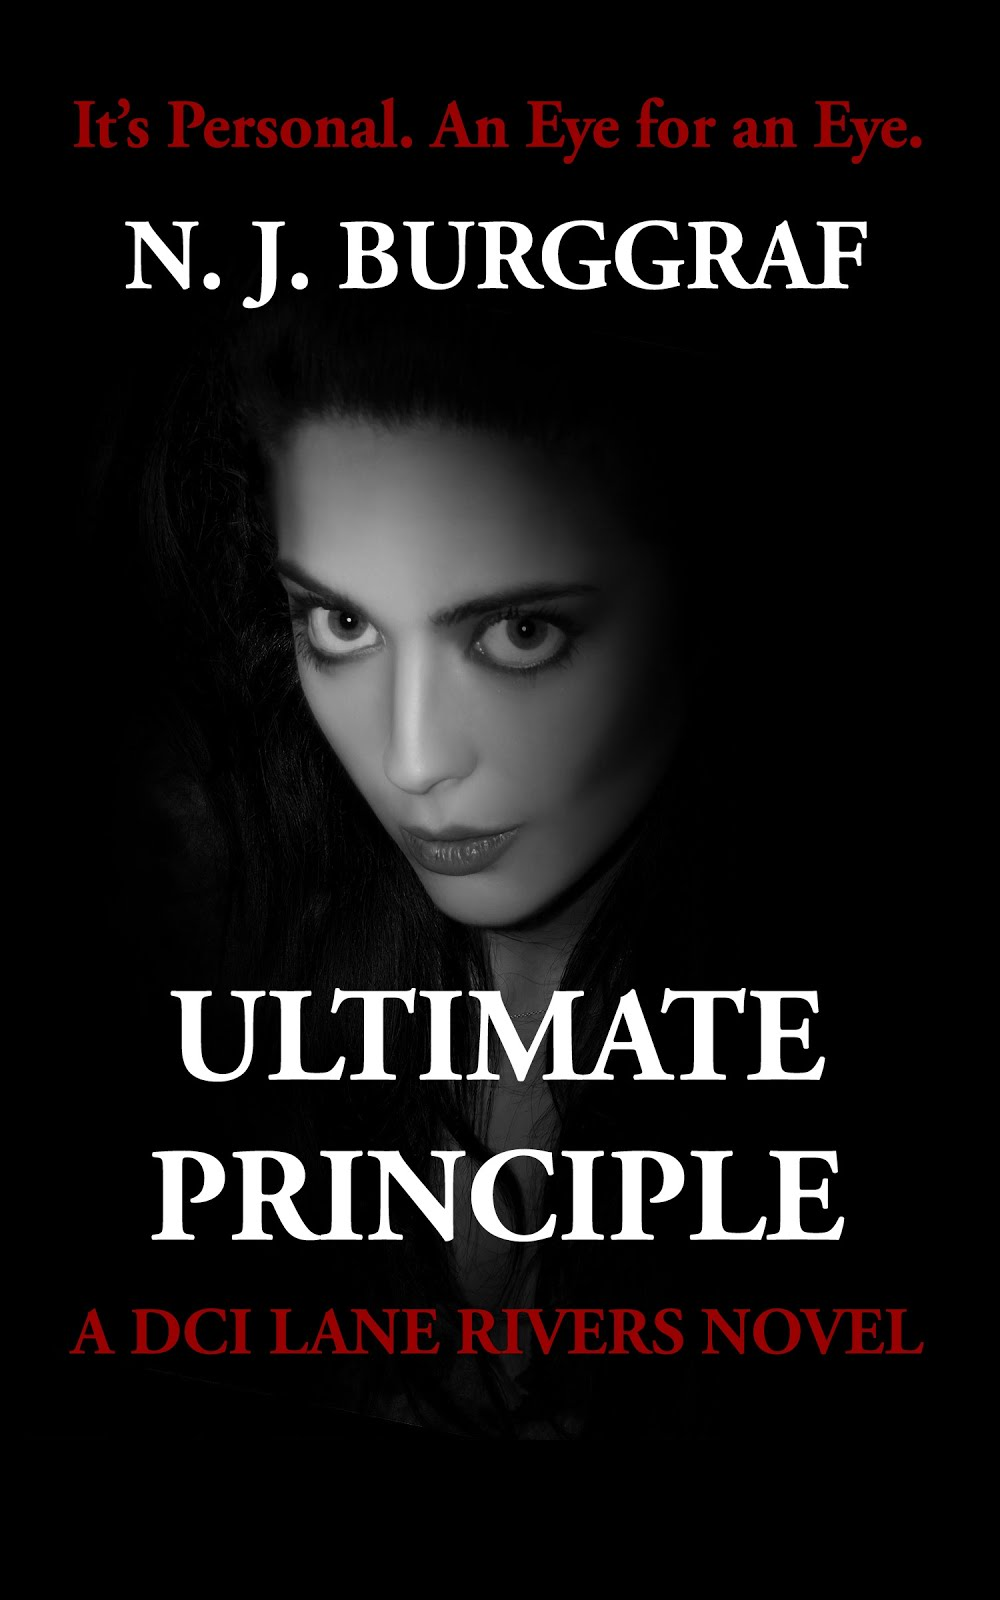 Ultimate Principle